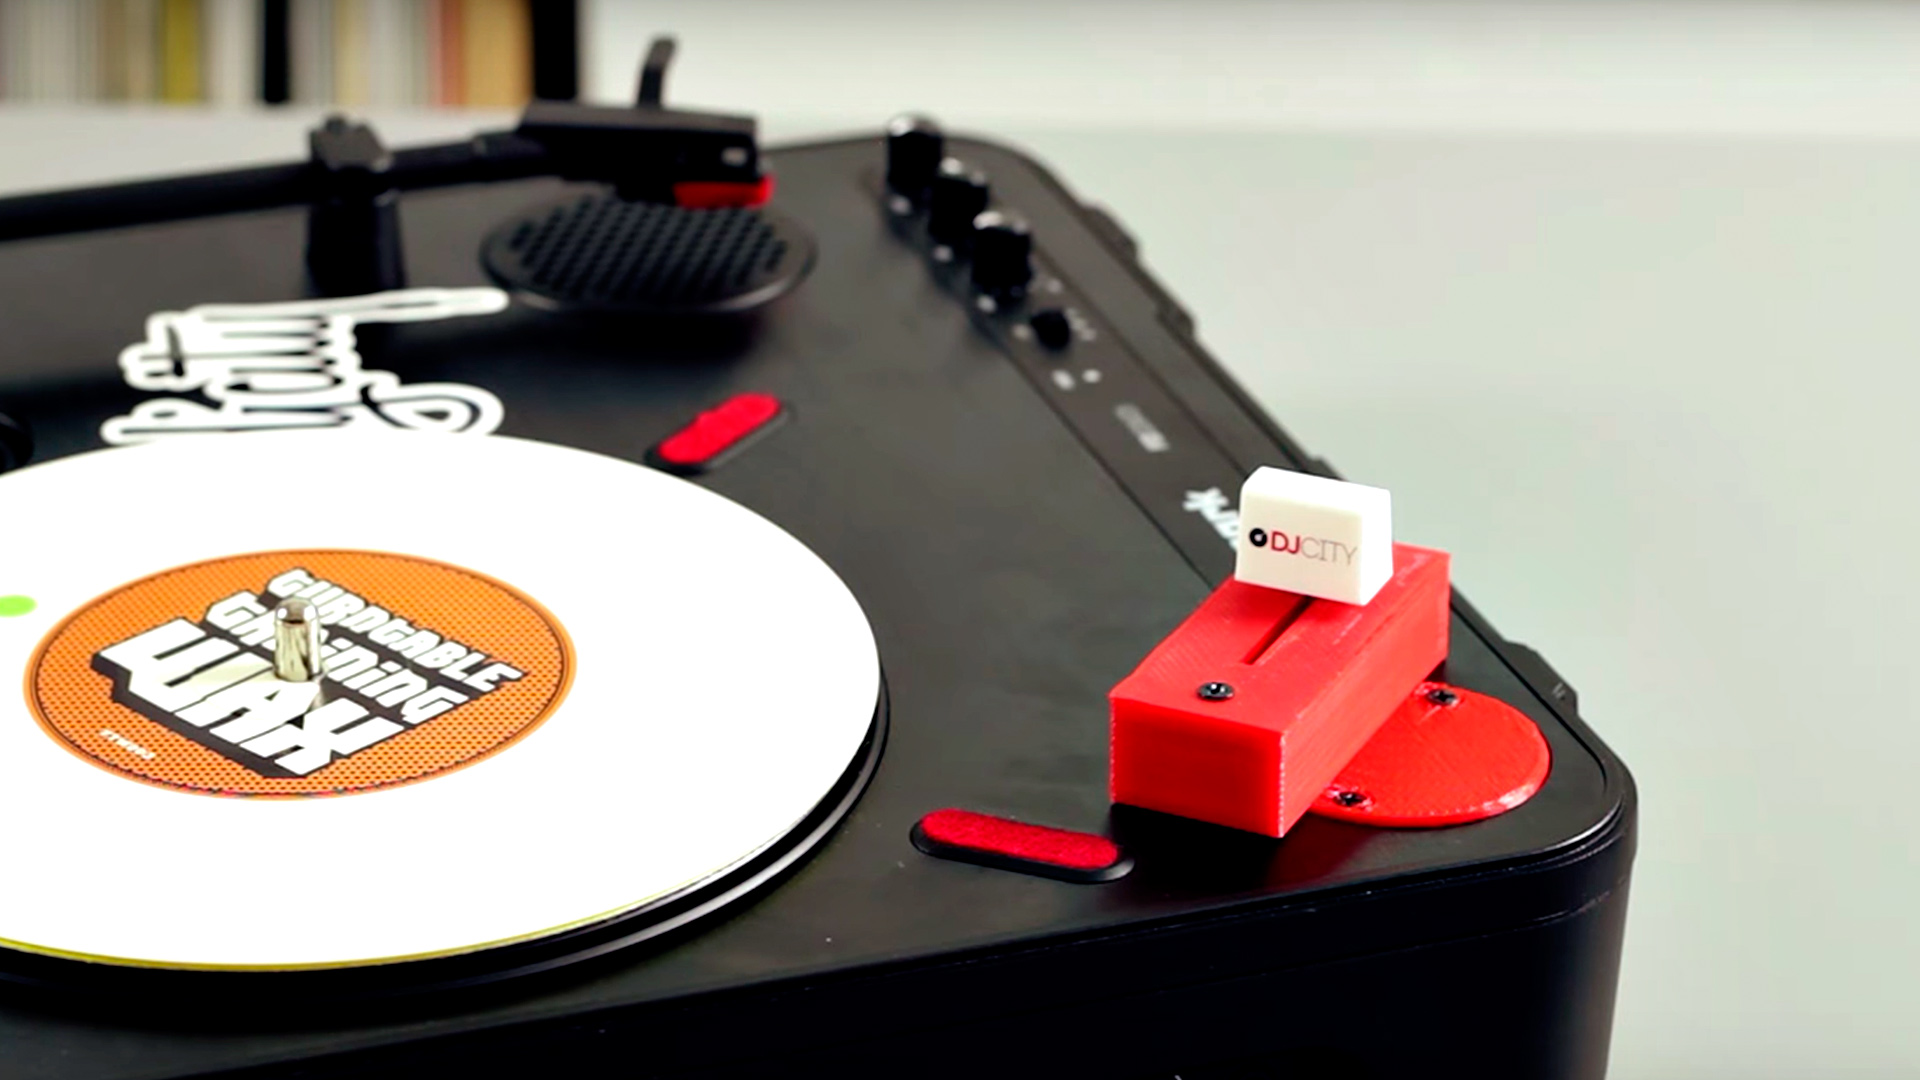 DjCity-3D-Printing-Your-Own-DJ-Gear